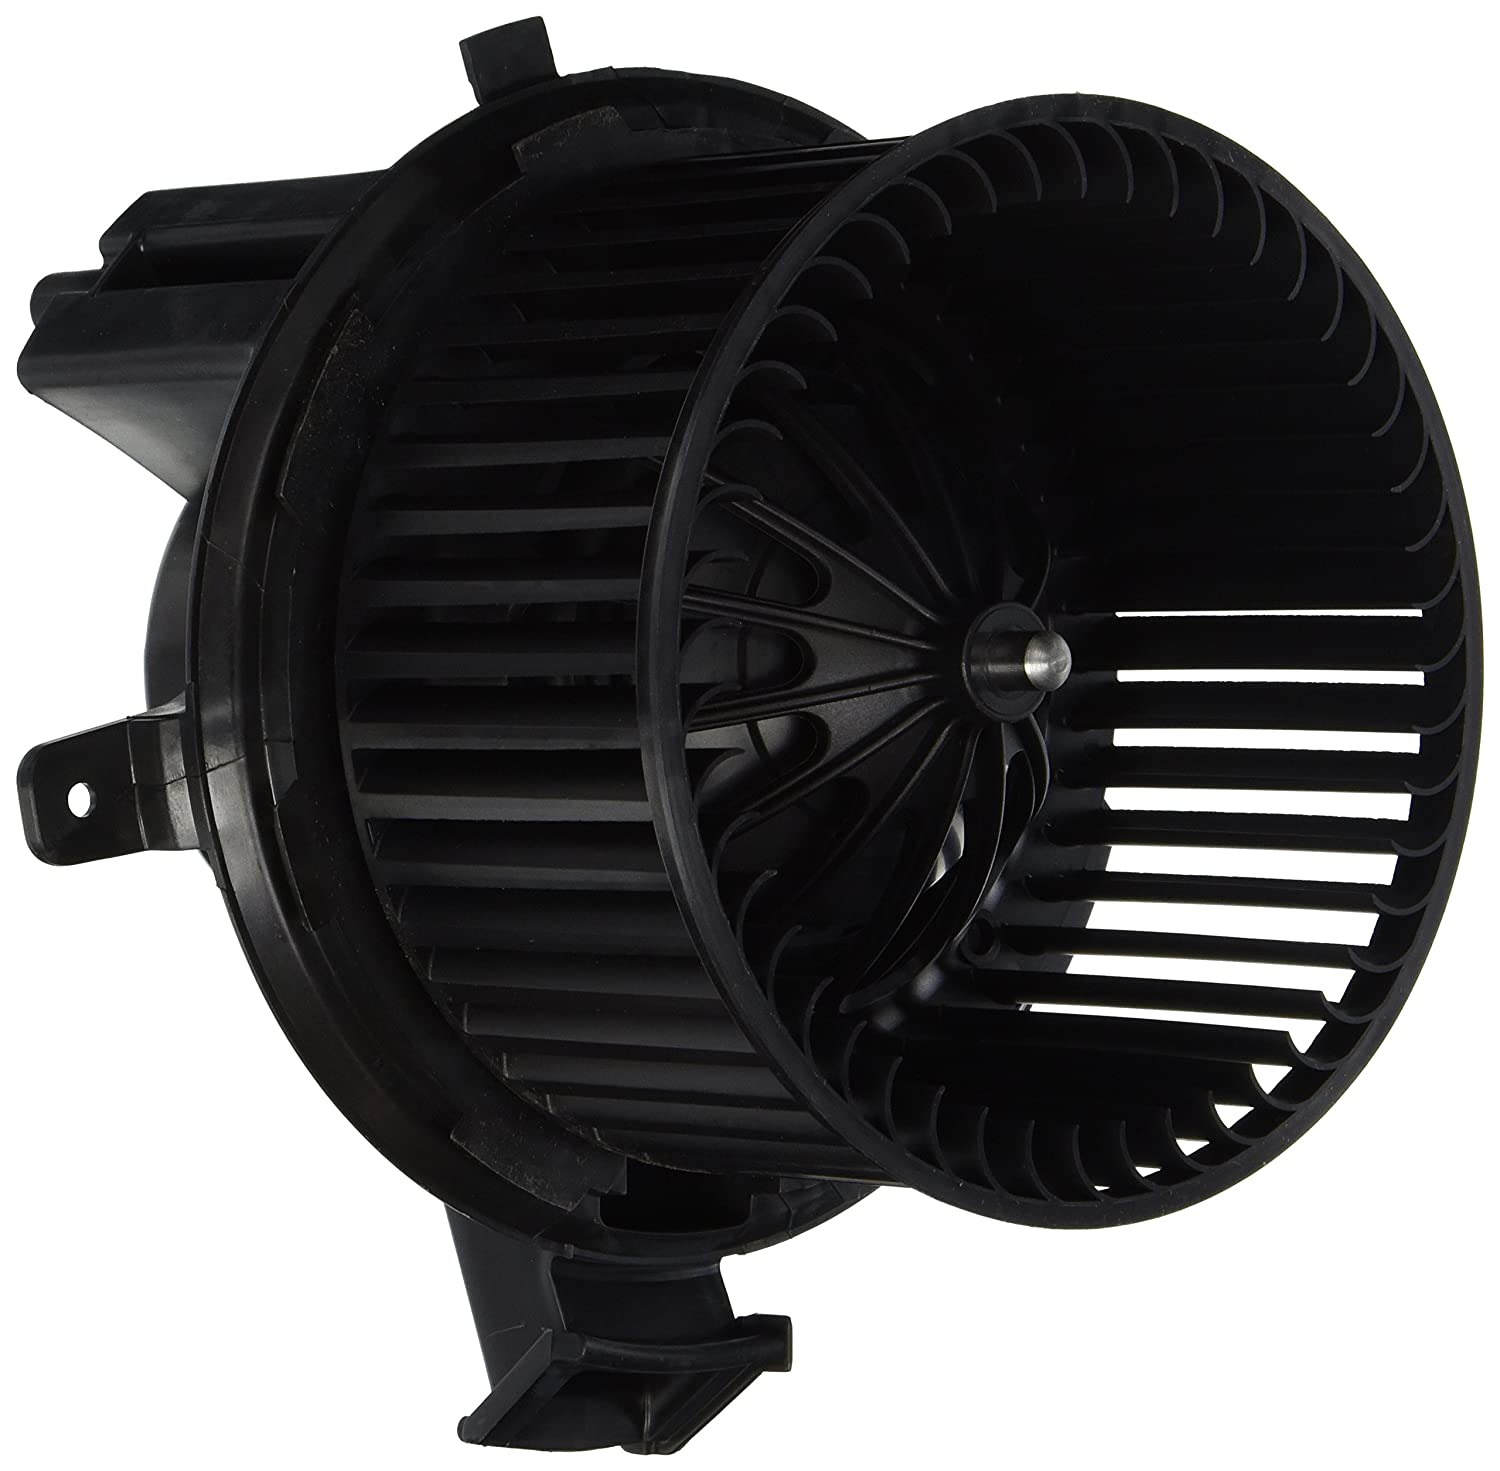 ACDelco 15-81682 GM Original Equipment Heating and Air Conditioning Blower Motor with Wheel